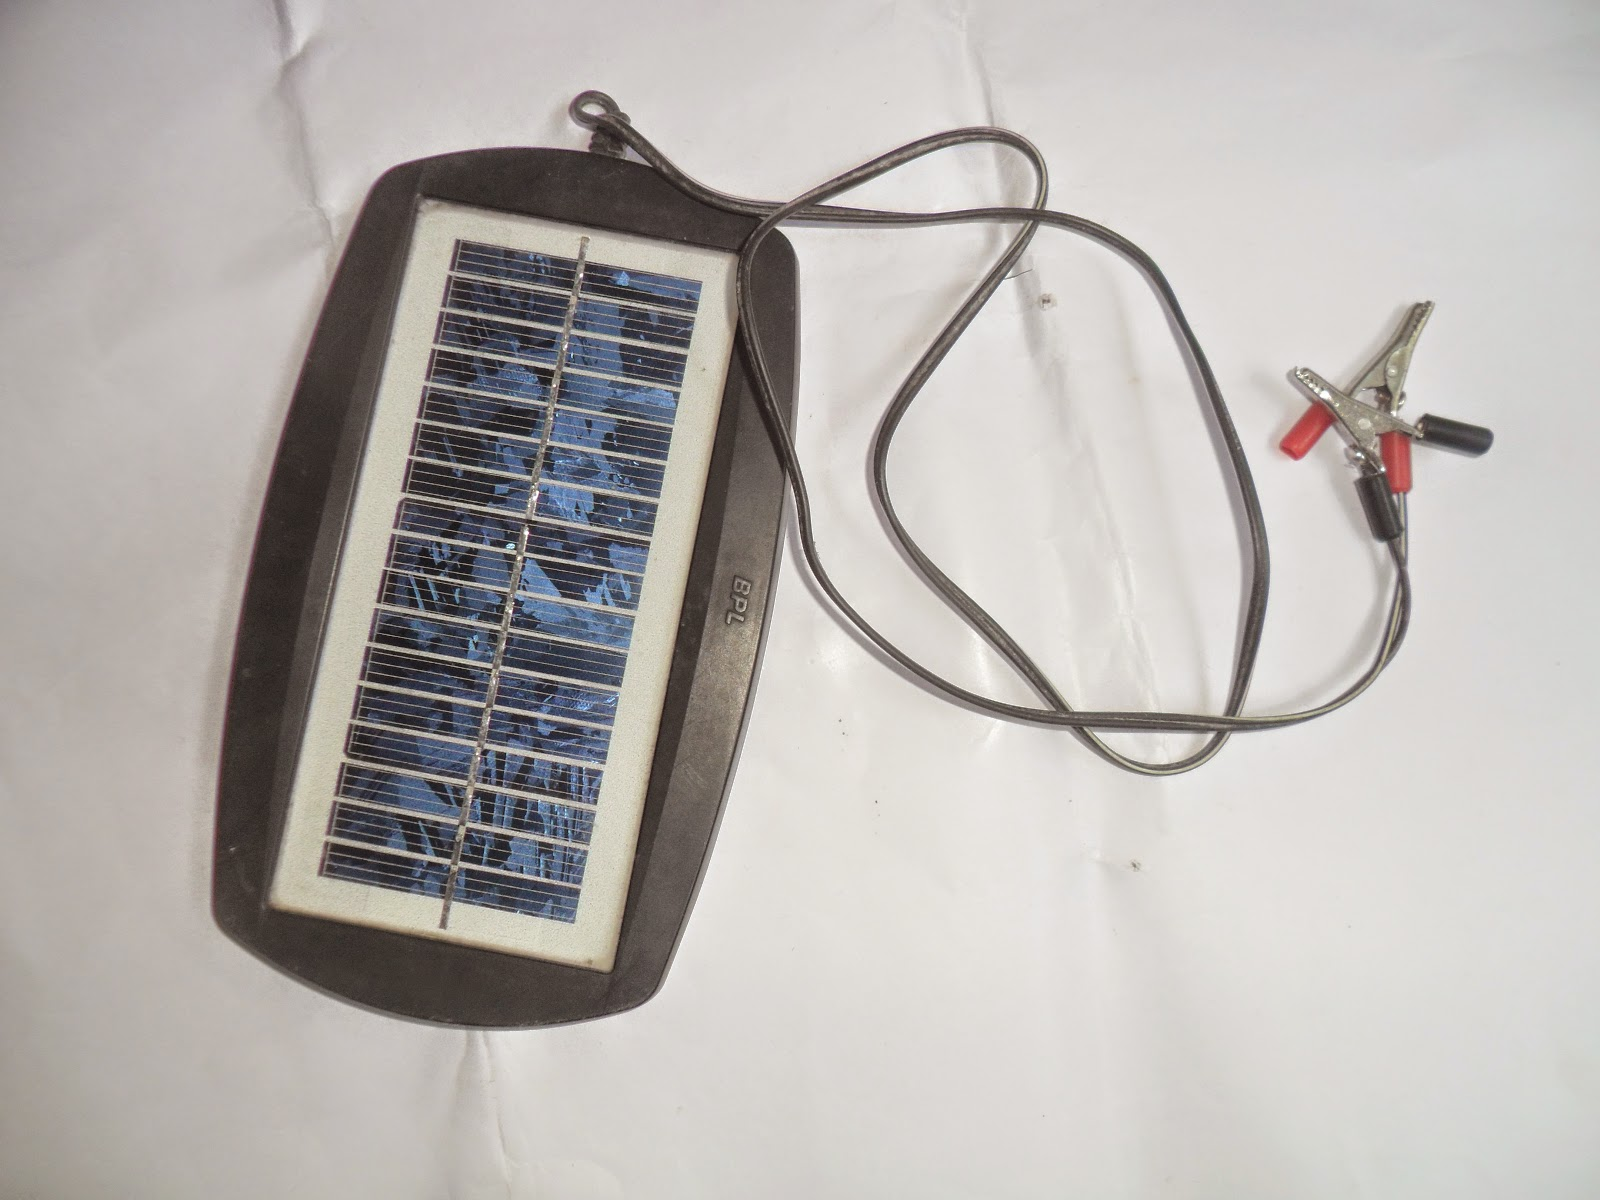 How To Make Emergency Light With A Simple 6v Circuit At Home The Right Part Of On When Enough Falls Ldr Solar Panel